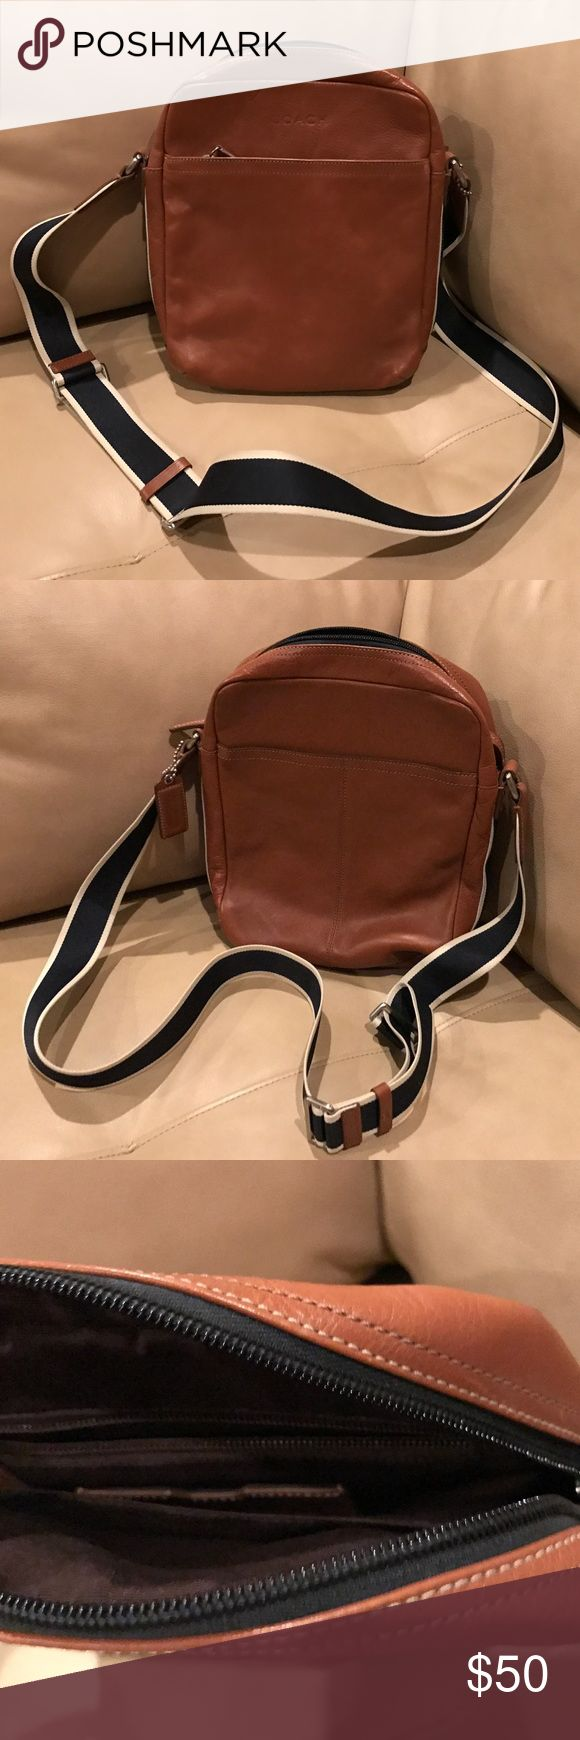 Coach Heritage Flight Messenger Bag Very nice Coach Messenger Bag from the heritage collection. Still in very good condition. Coach Bags Messenger Bags